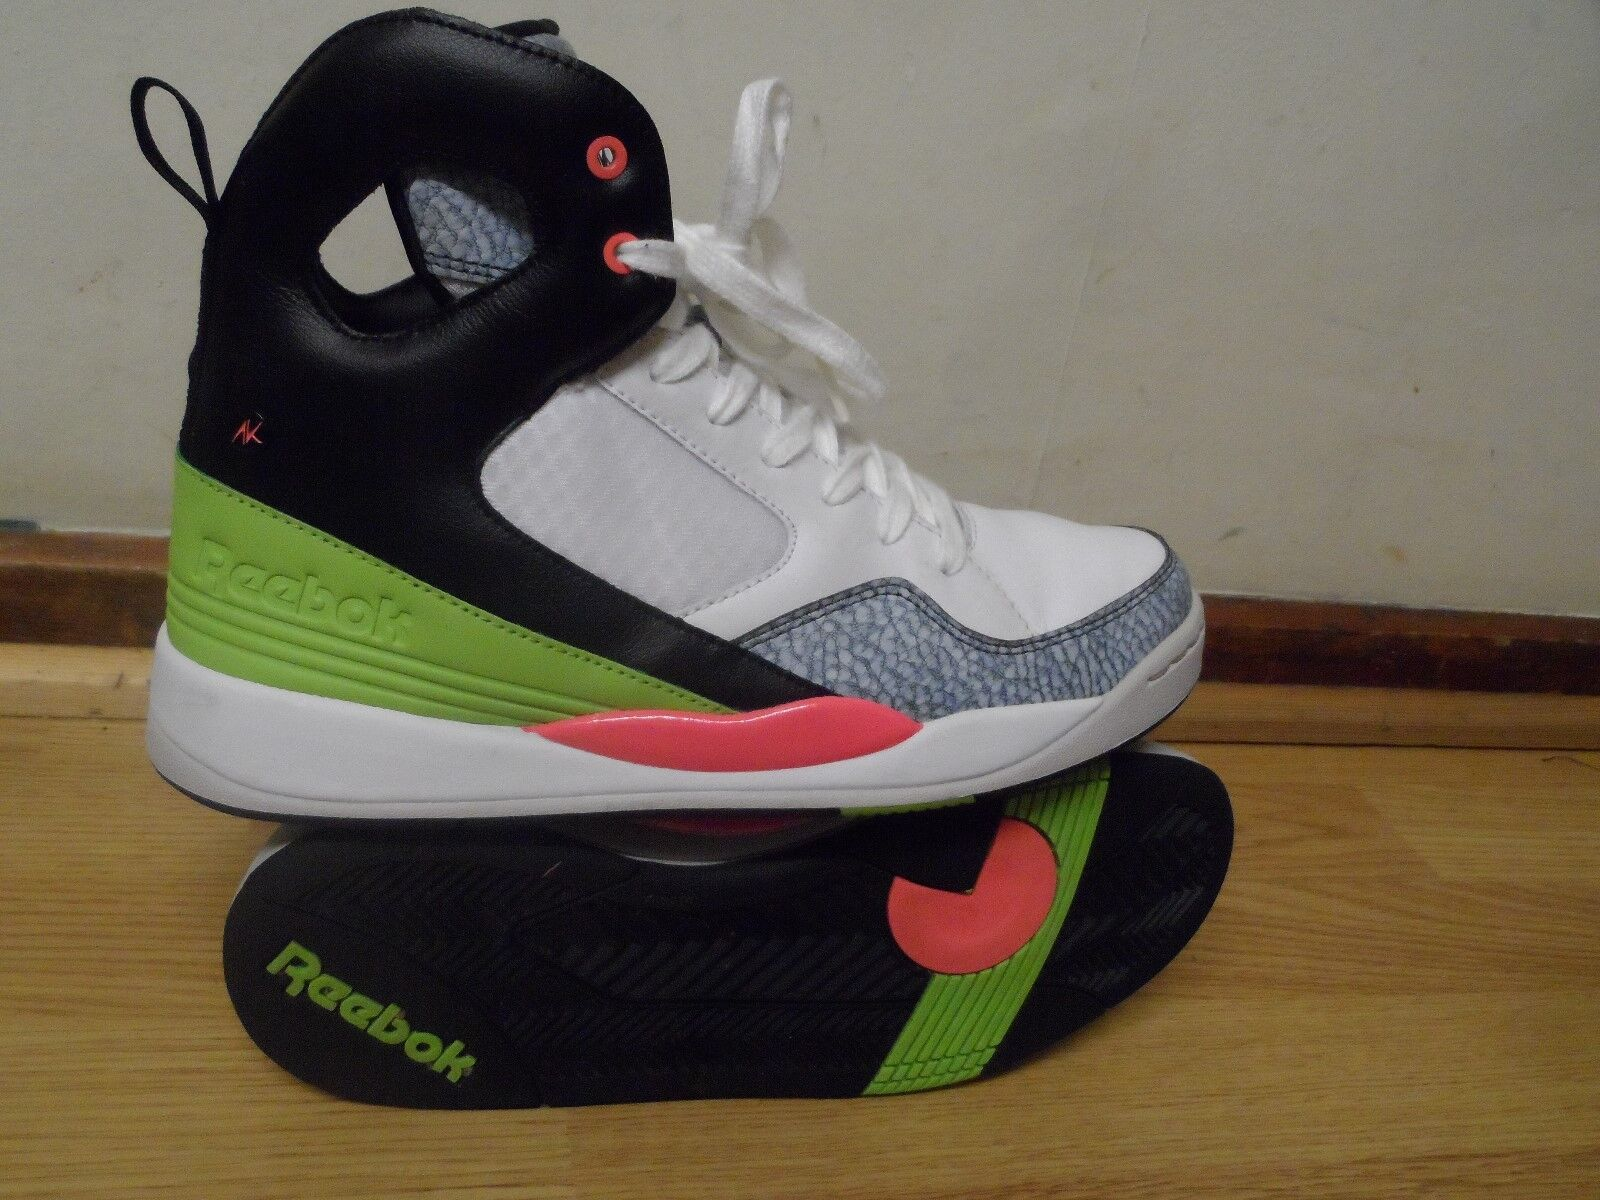 Reebok womens trainers size   eu 38 made in vietnam